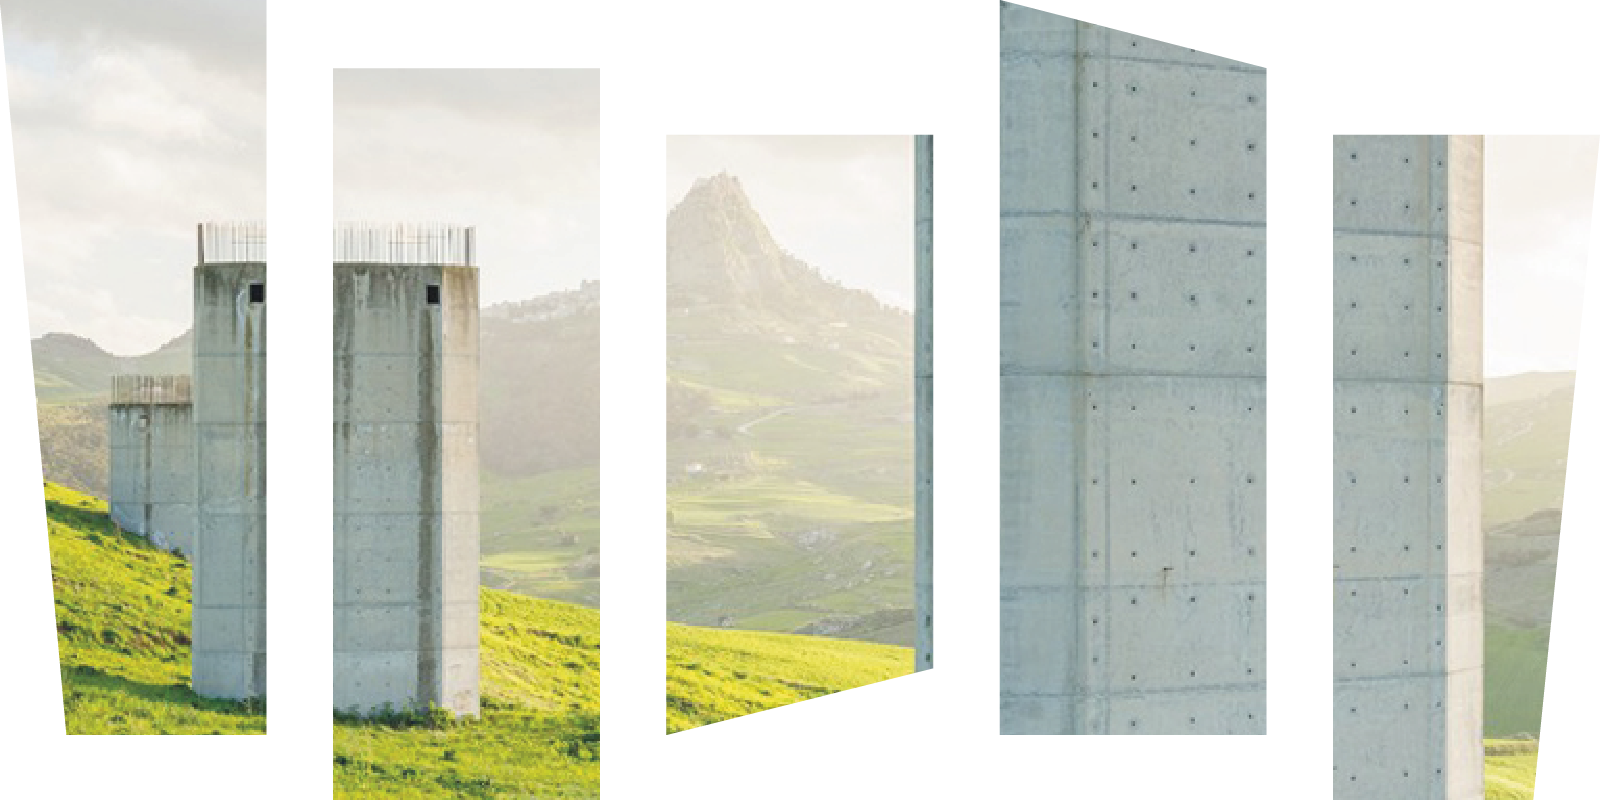 A view on unfinished architecture in the countryside with mountains on the horizon